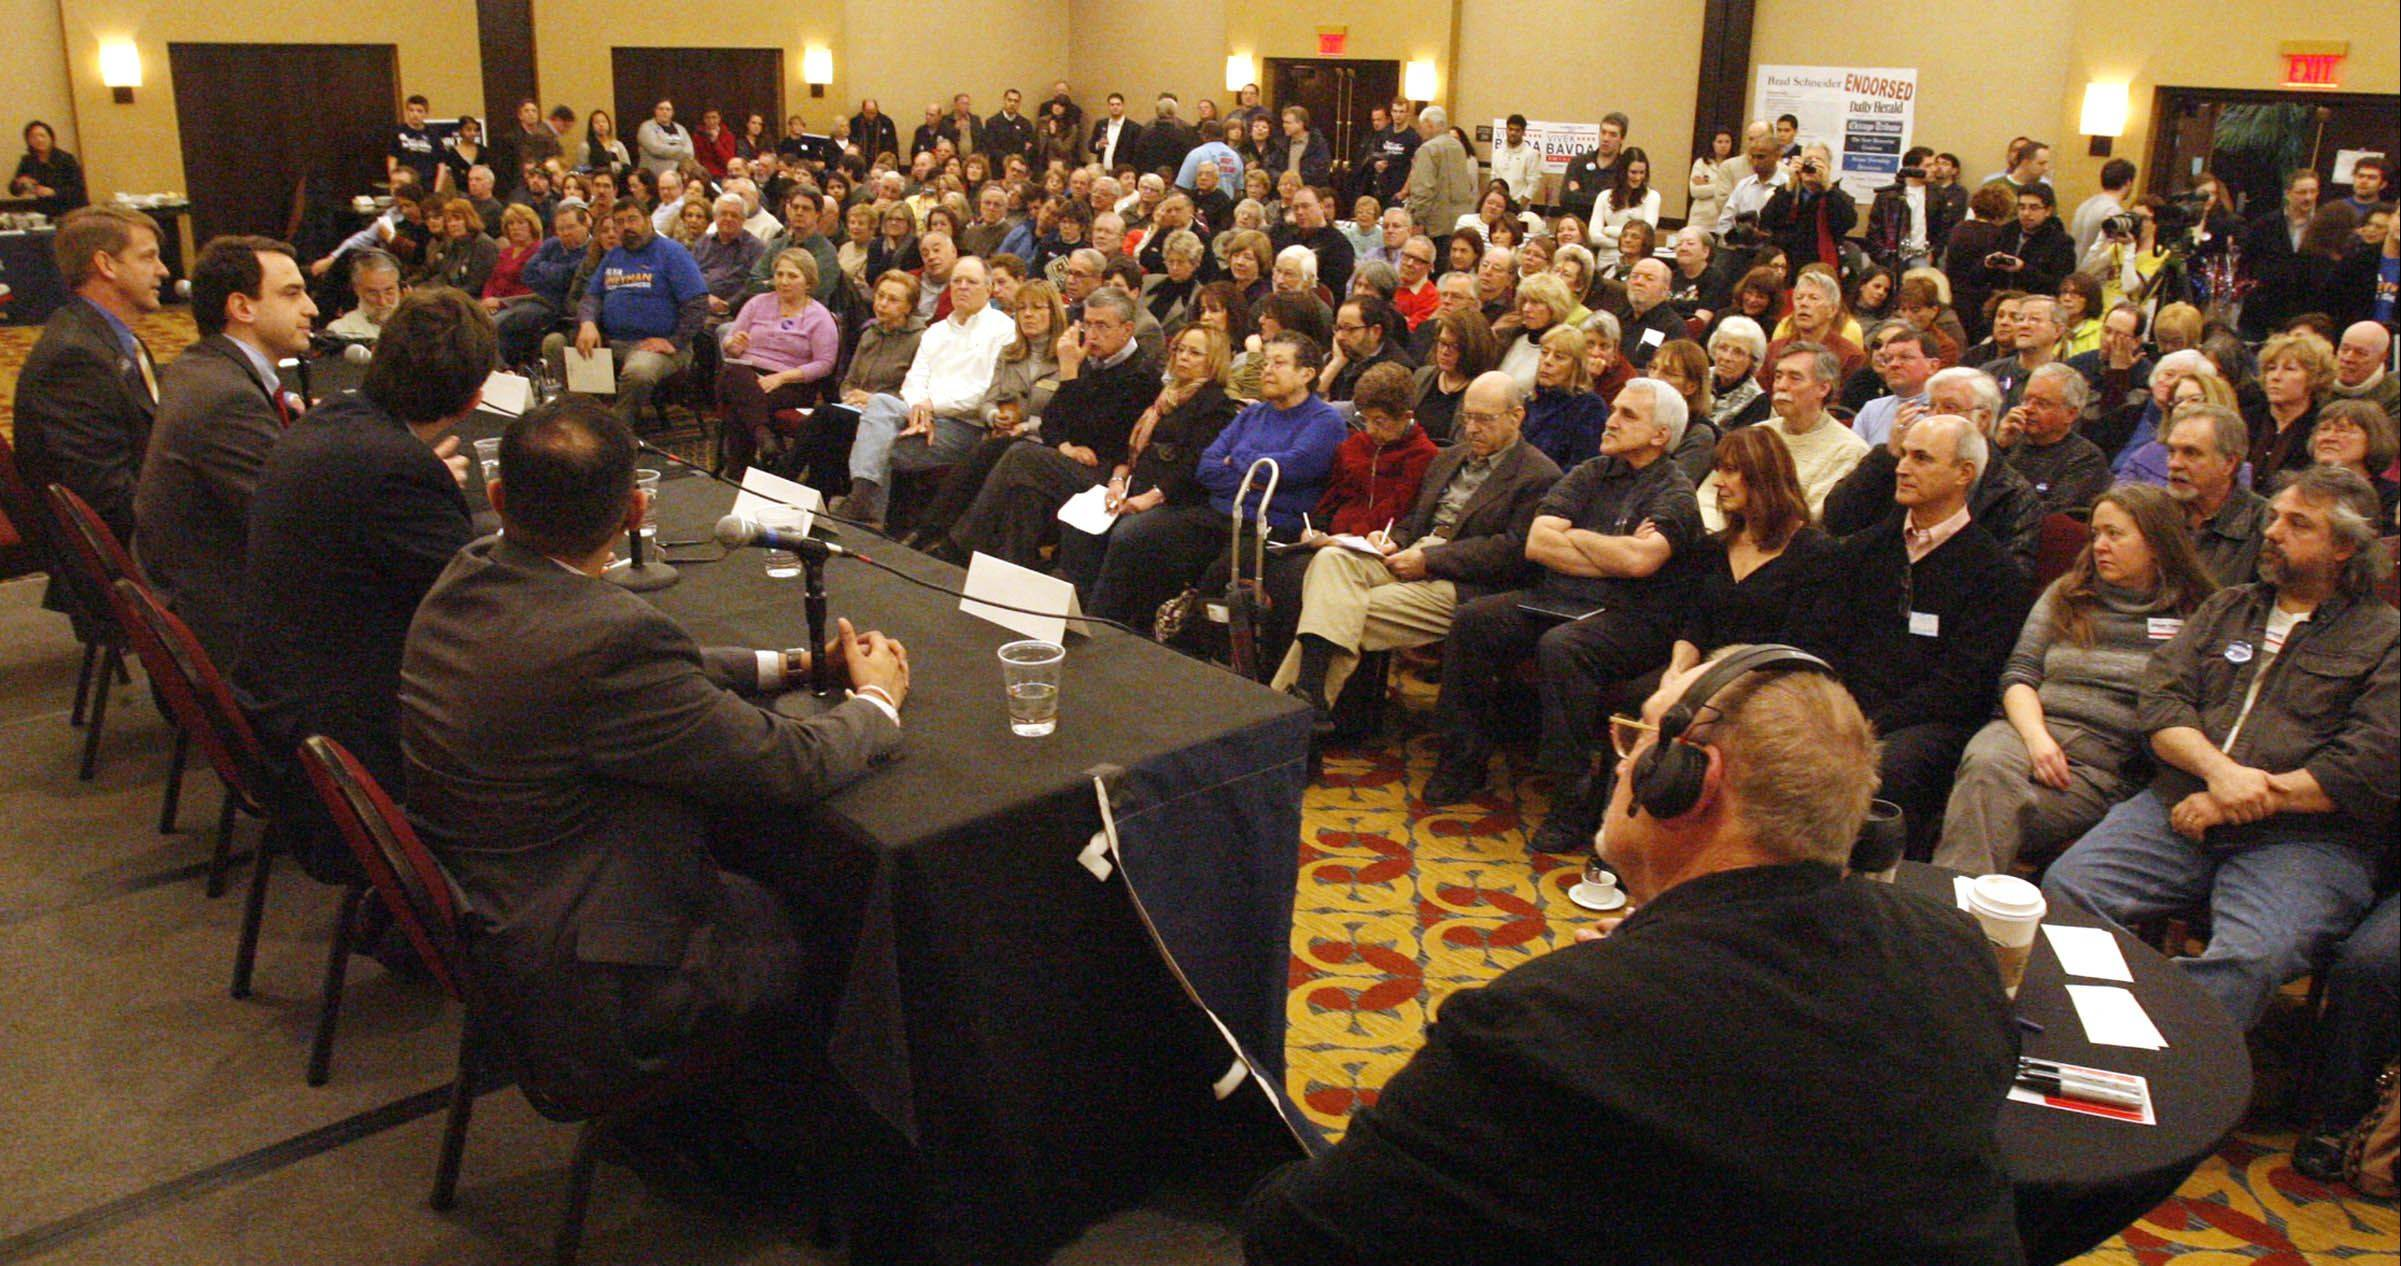 Democratic candidates for the 10th Congressional District, from left Vivek Bavda, Brad Schneider, Ilya Sheyman, and John Tree answer questions presented by WCPT radio host Dick Kay at a live forum Saturday at the Hyatt Deerfield.